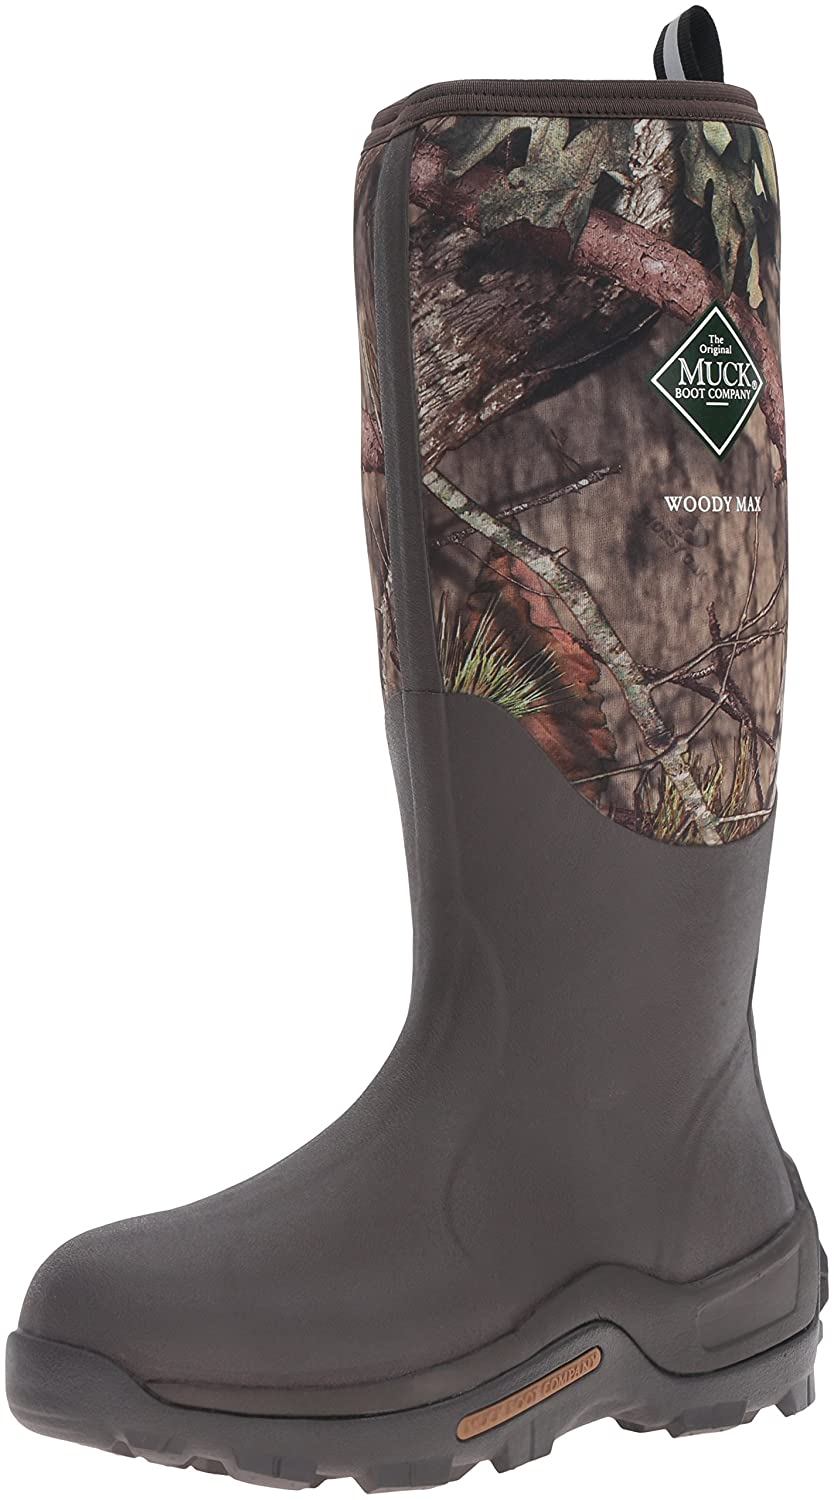 Muck Boots Woody Max Rubber Insulated Men's Hunting Boot Woody Max-M